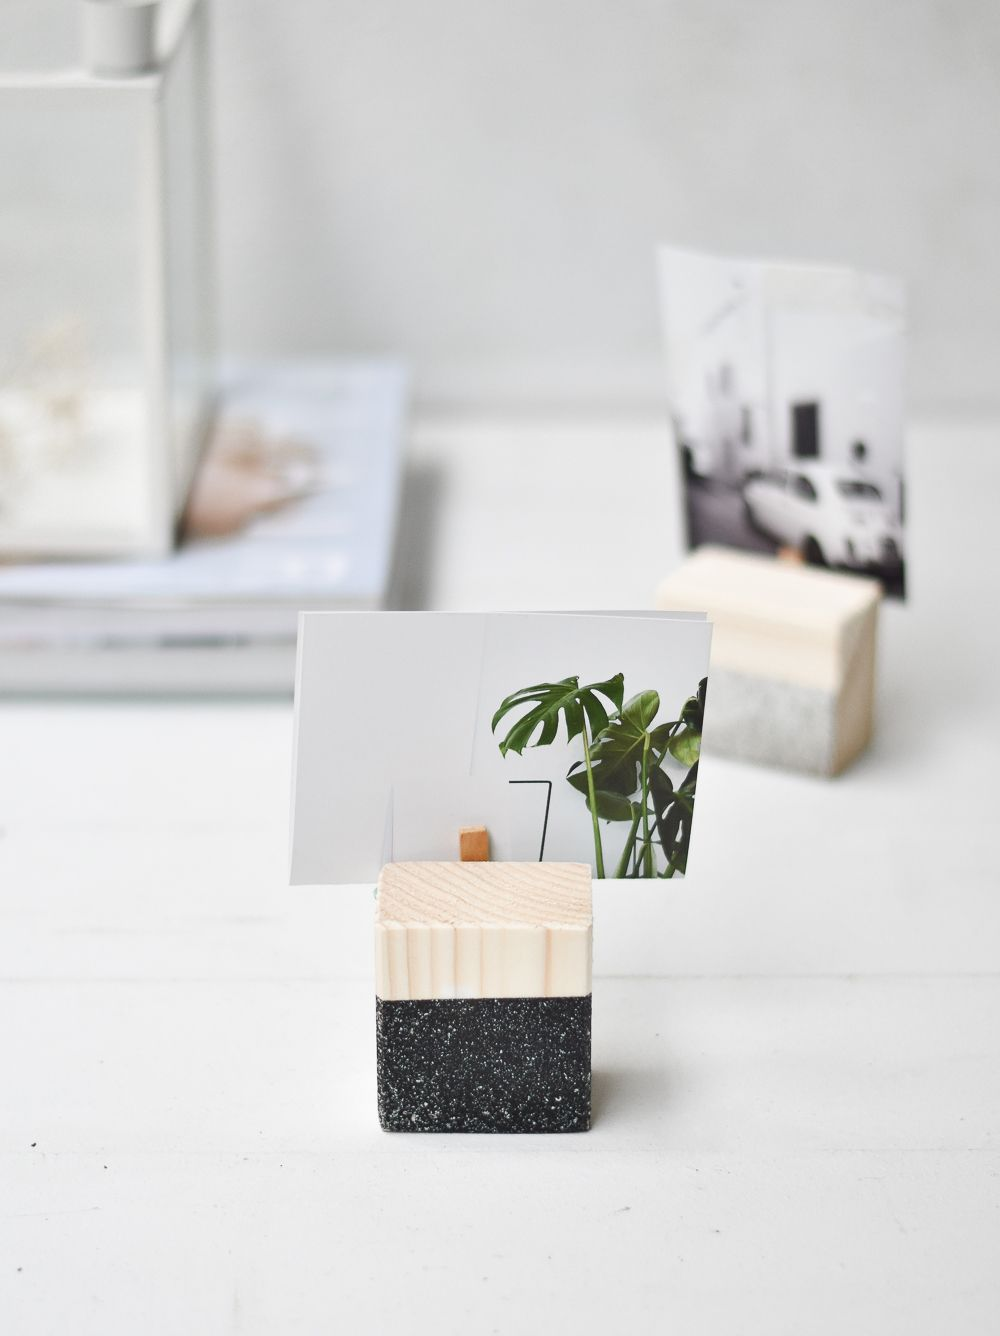 DIY Geometric Photo Holders for Desk